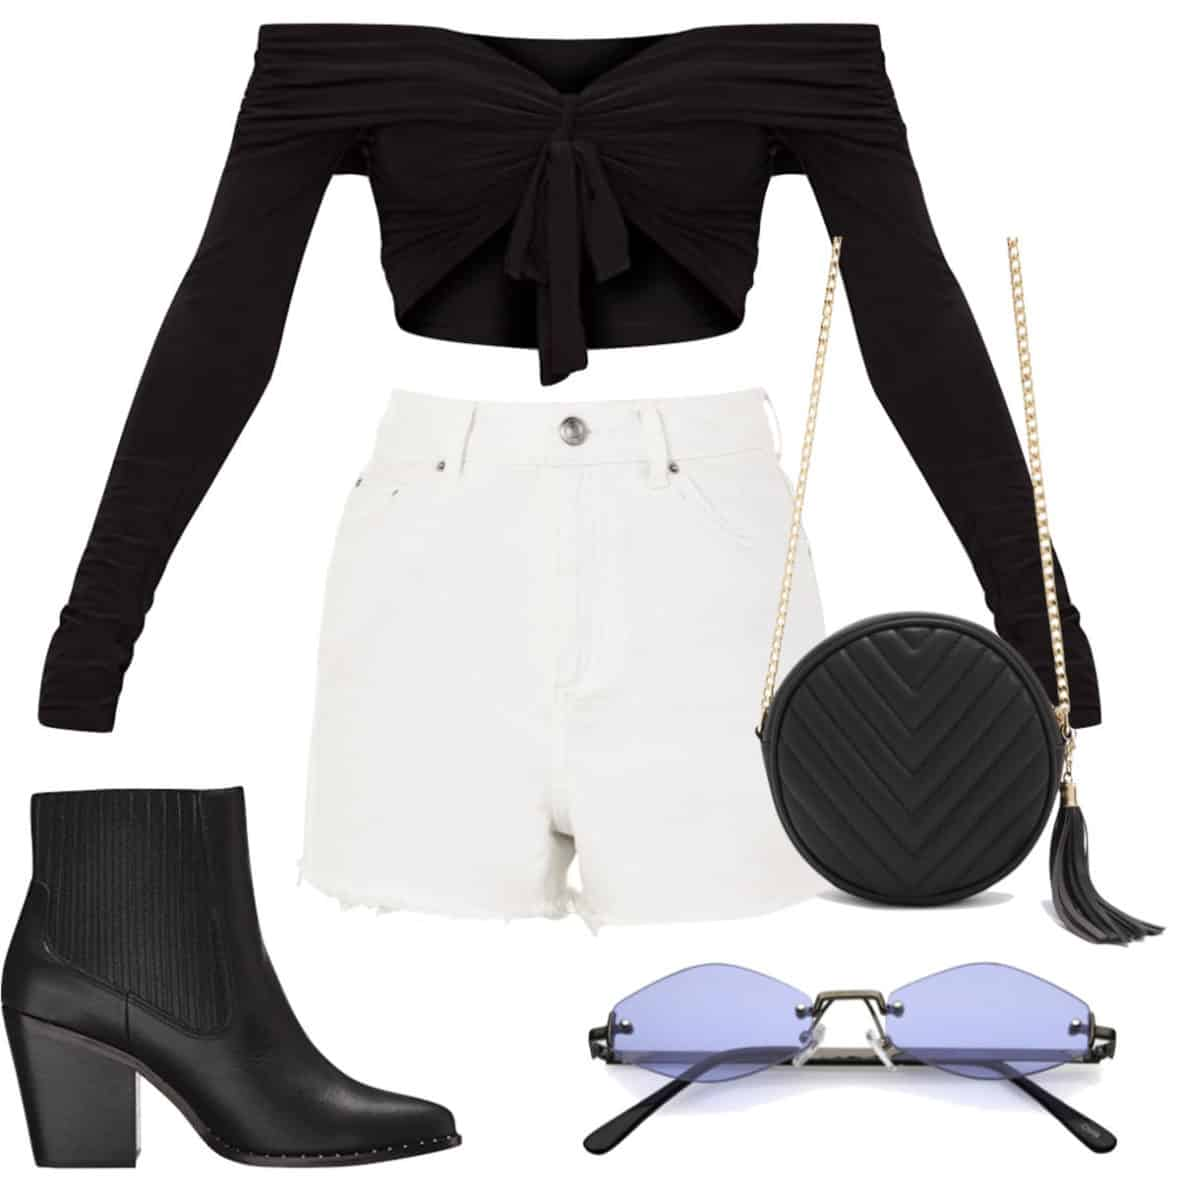 Shay Mitchell Outfit: black off the shoulder tie-front crop top, white high rise denim shorts, black chainlink crossbody bag, black almond toe booties, rimless vintage-inspired sunglasses